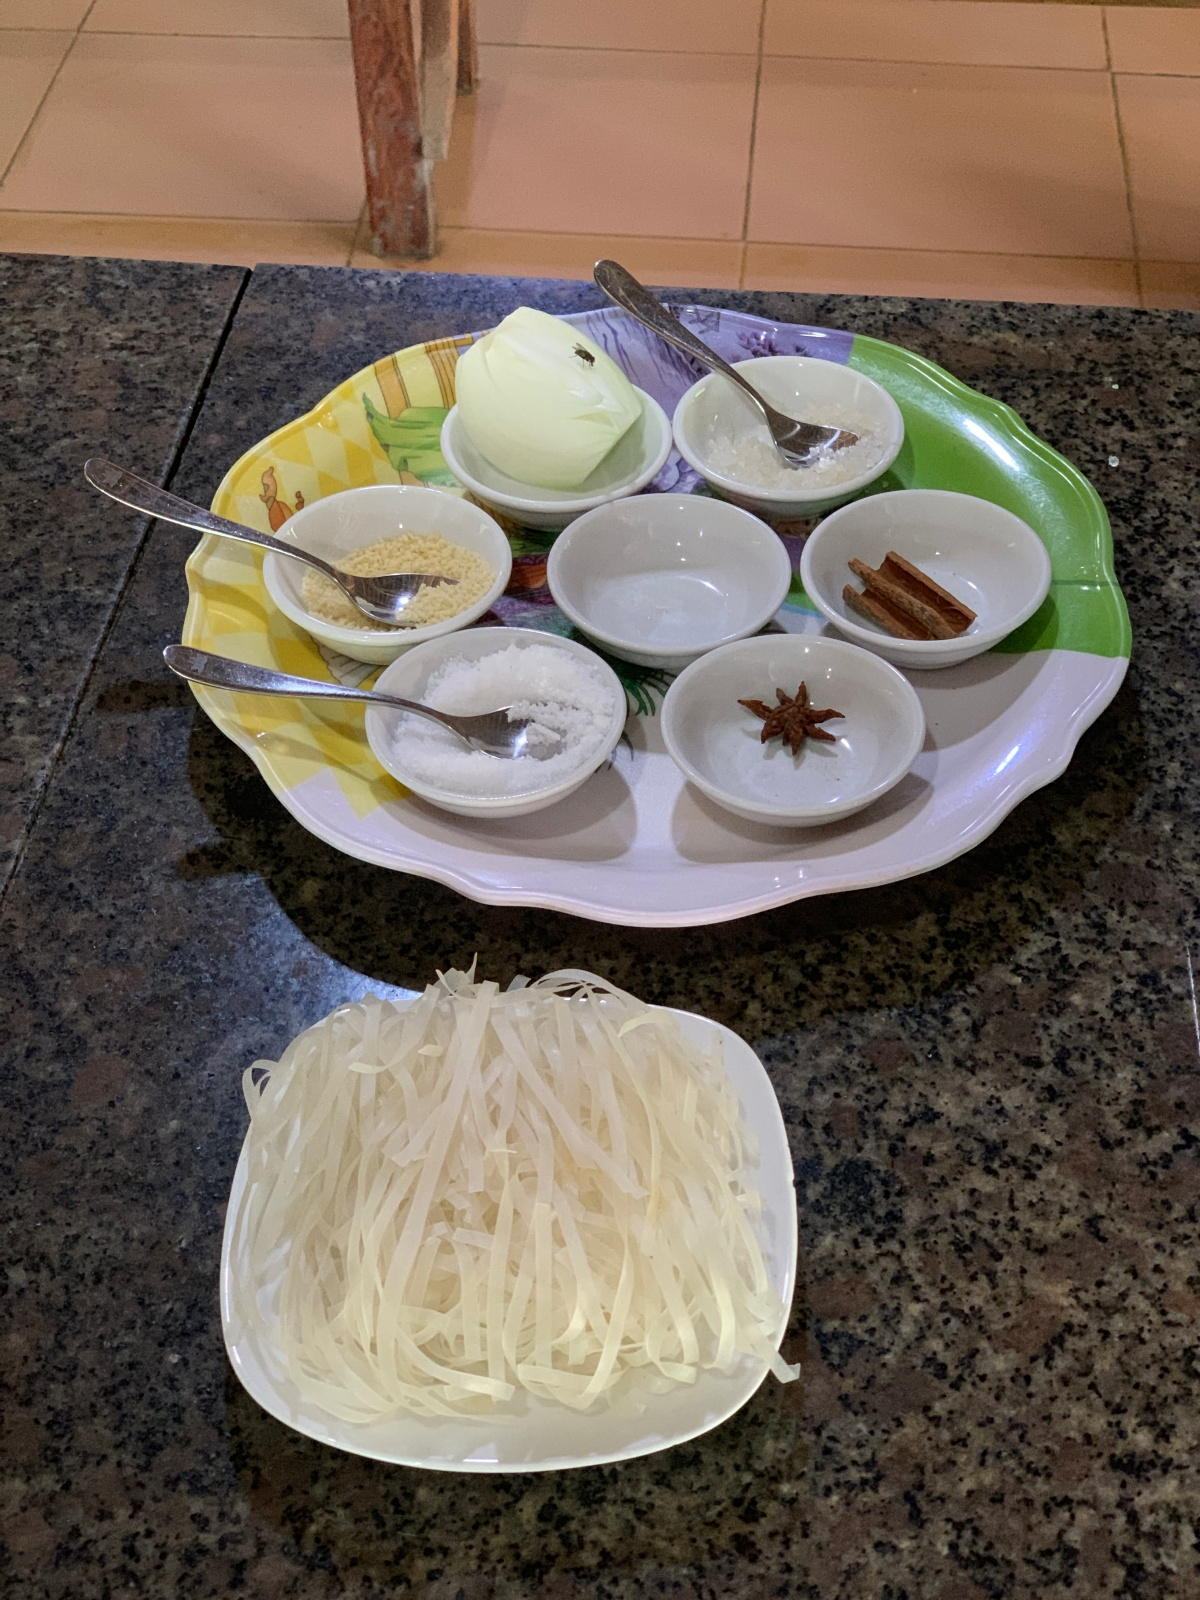 2019-05-17 Vietnam iPhone Photos 149